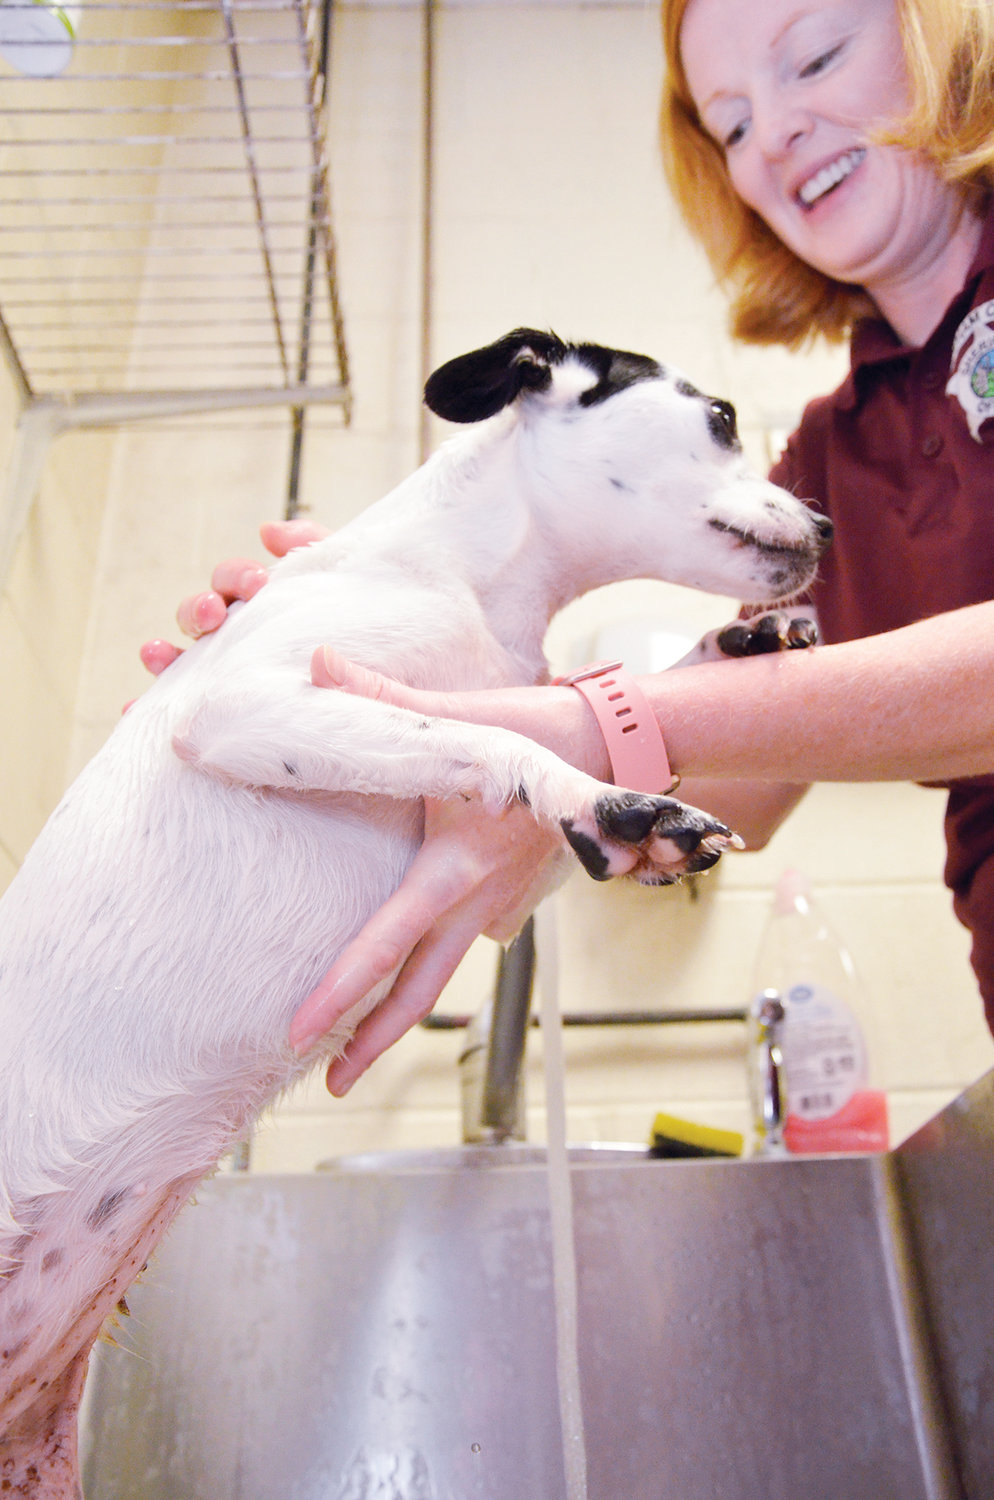 Tatiana, a rat terrier mix, gets a cooling bath from Kimberly Harman at the animal shelter. Animals suffer from the heat because of their body makeup. By cooling their stomach in lukewarm water, the animal's body heat can safely be reduced.